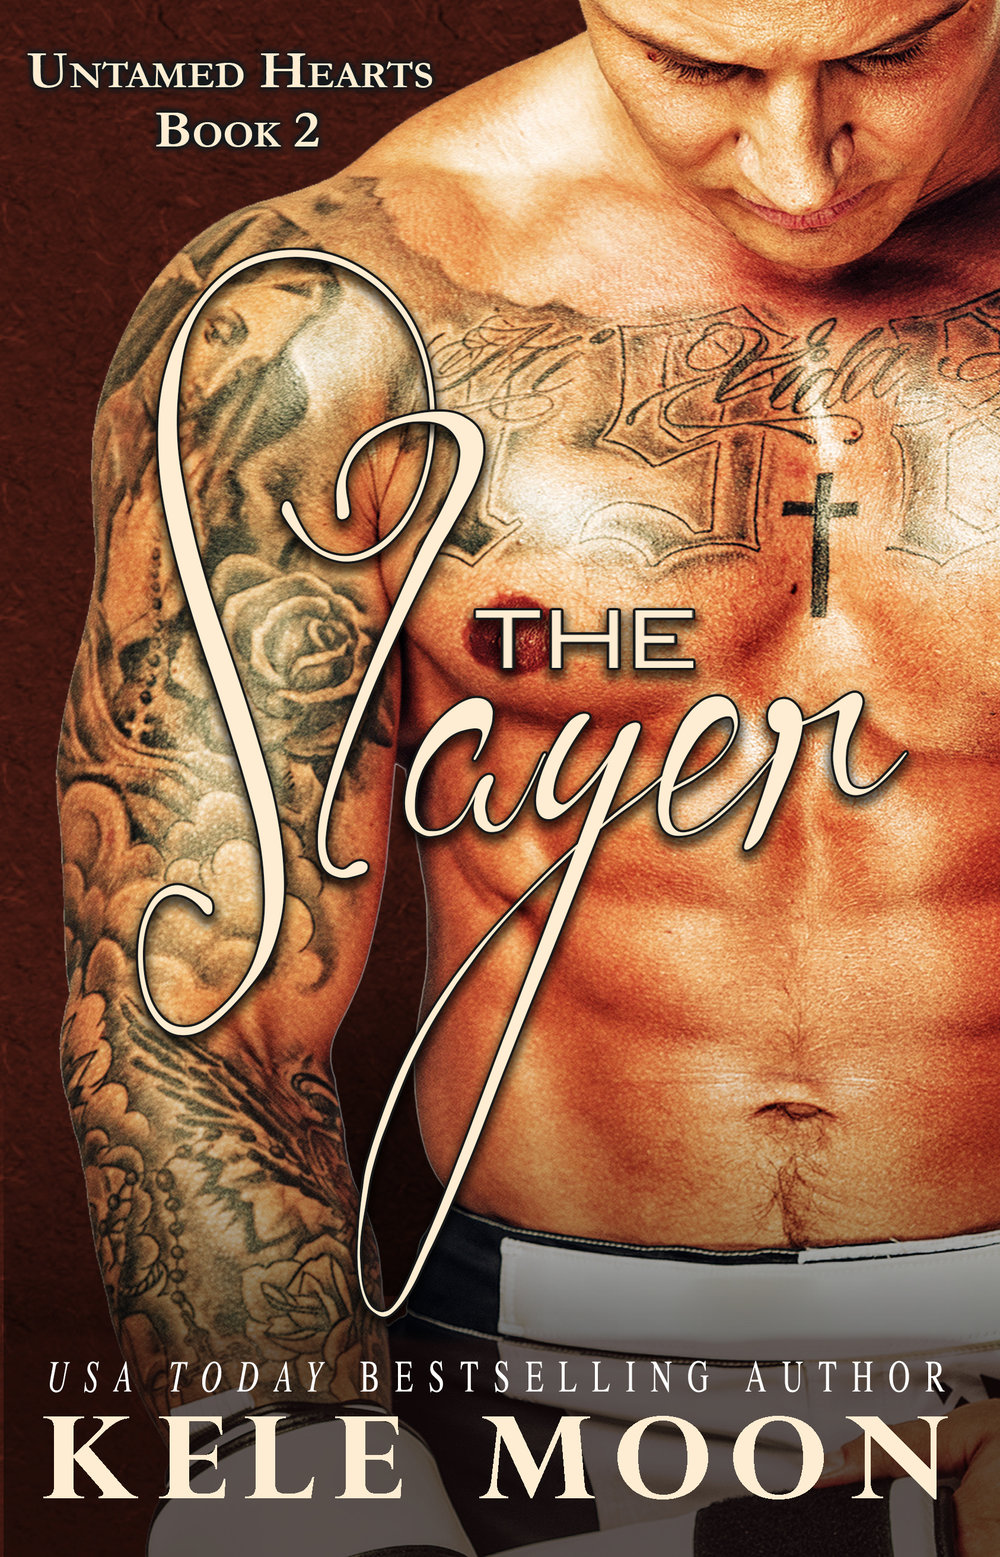 The Slayer (Untamed Hearts Book 2) Publication Date:   March 31, 2015